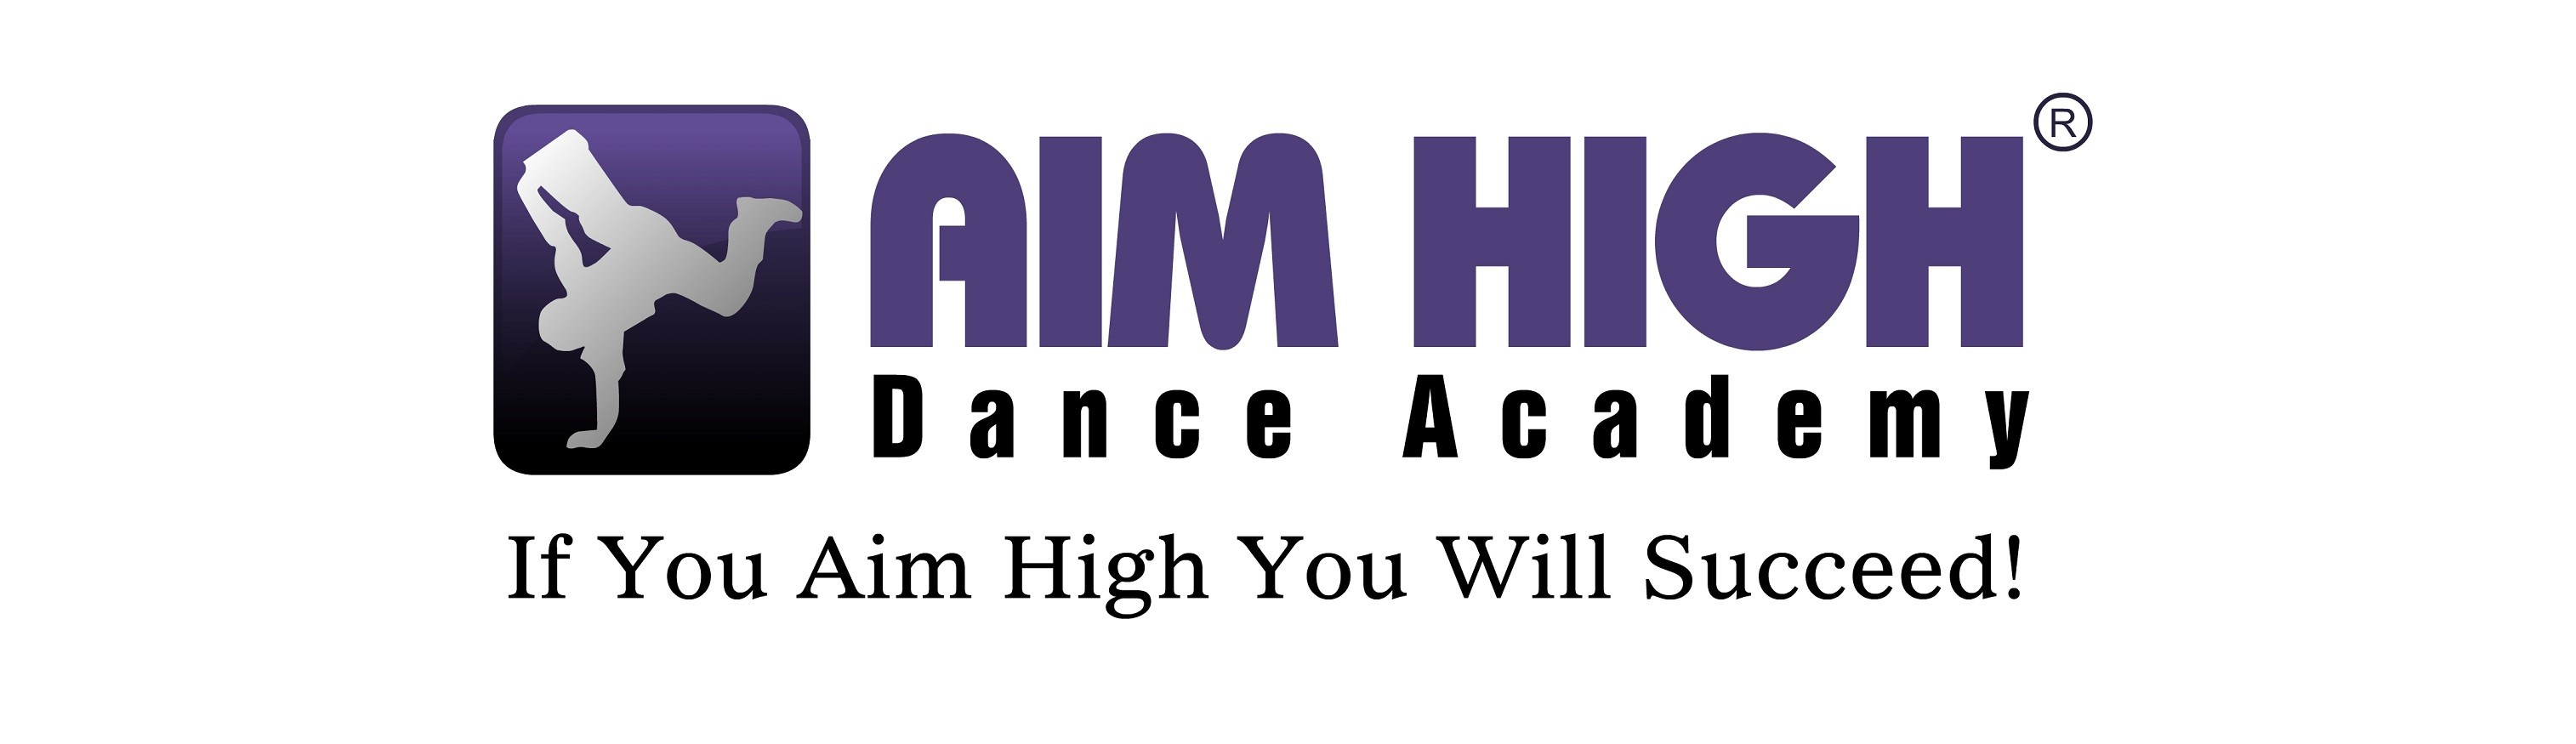 Aim High Dance Academy